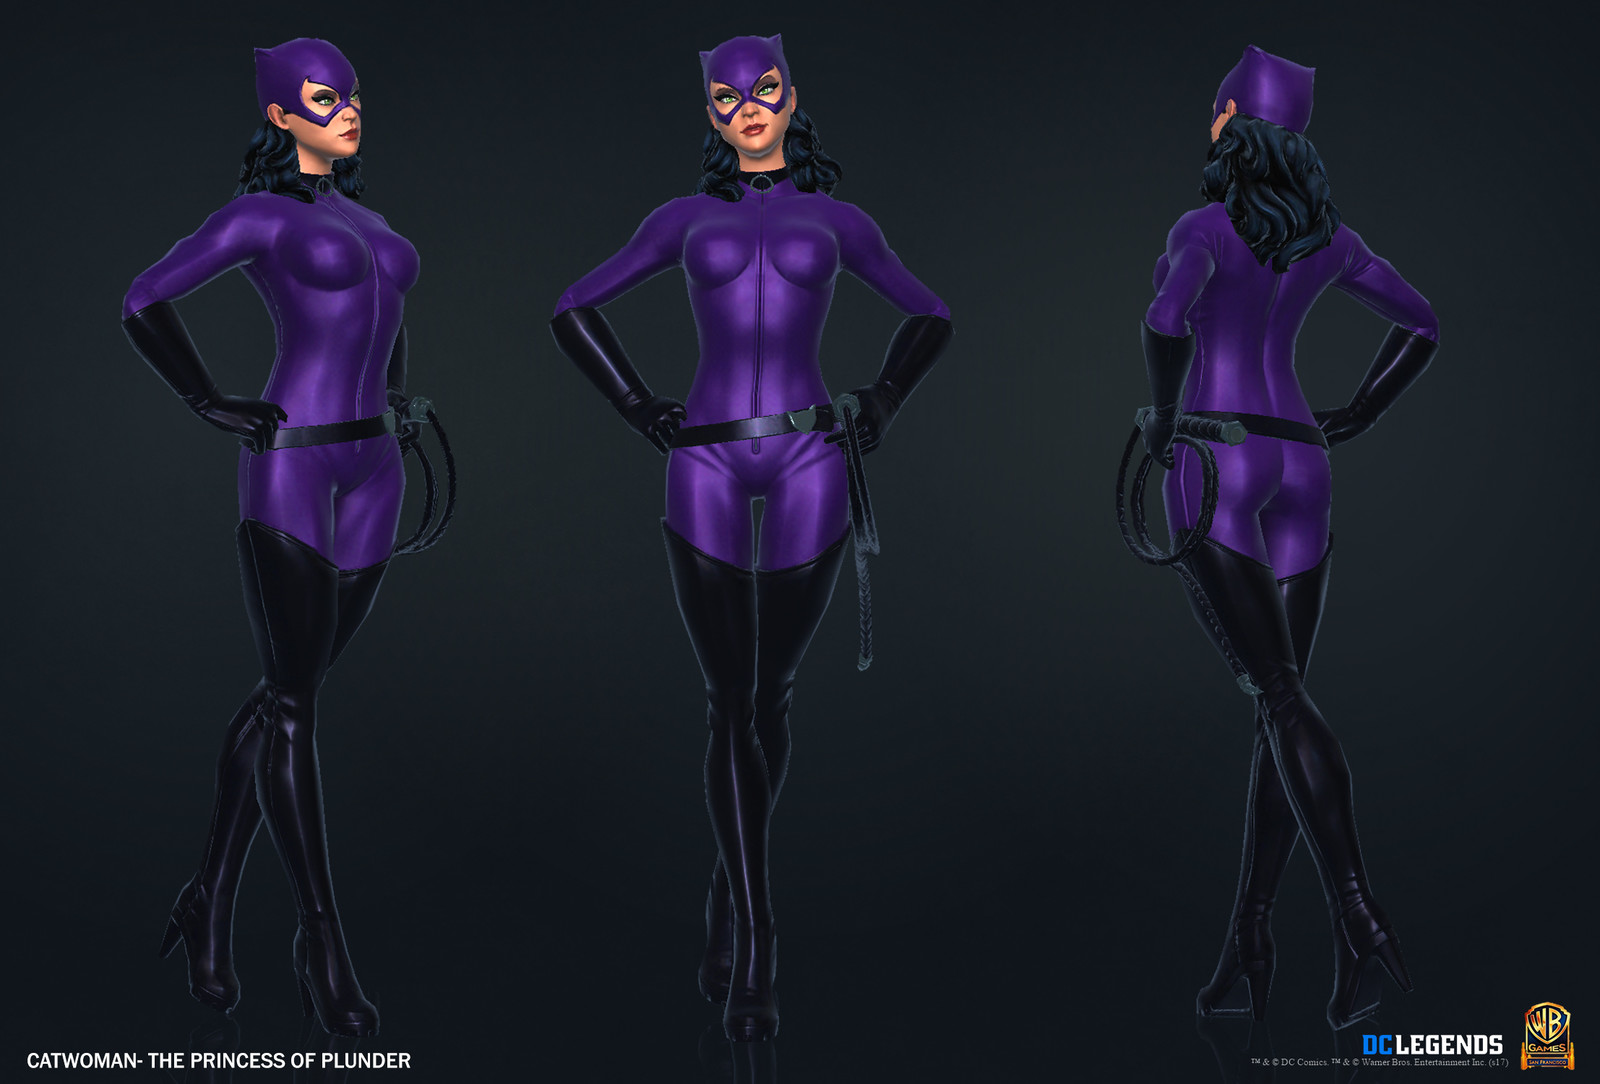 Catwoman Heroic High Poly, Low Poly and Textures/Material work done by me. Additional Texture/Material pass done by Rachelle Danielle.